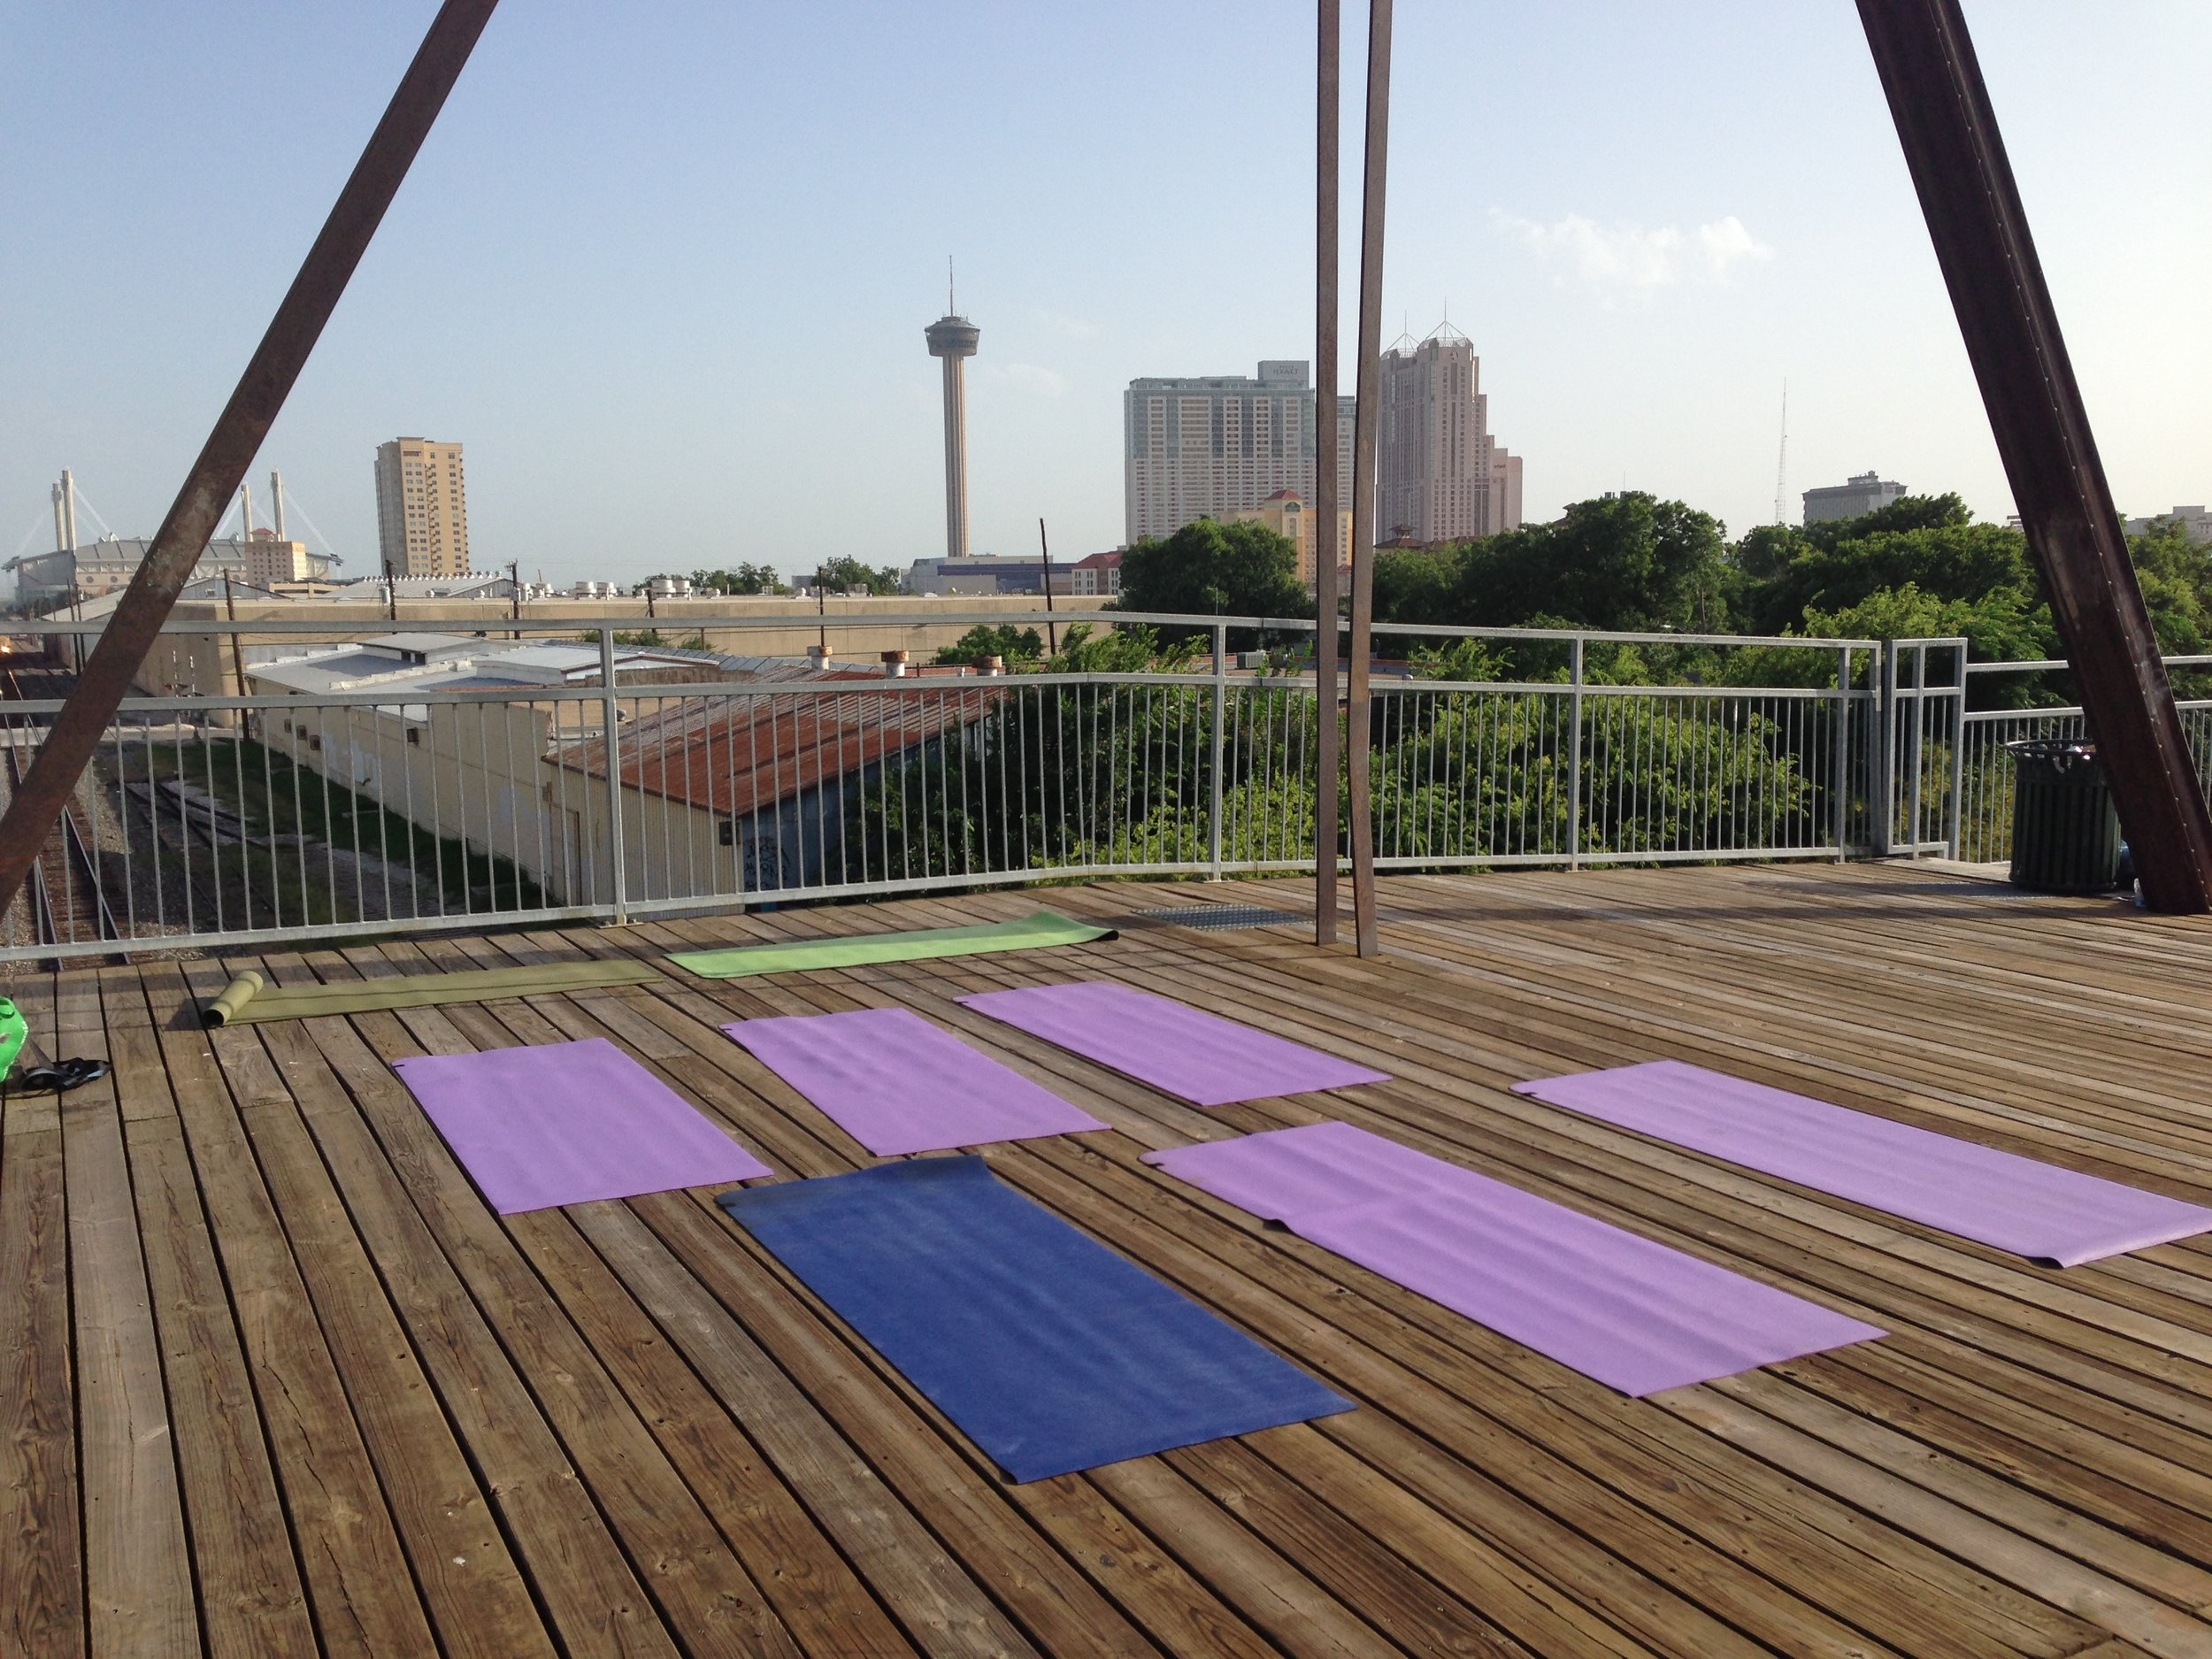 Yoga mats unrolled in preparation for the first Mobile Om class on the Hays Street Bridge on June 21, 2013.